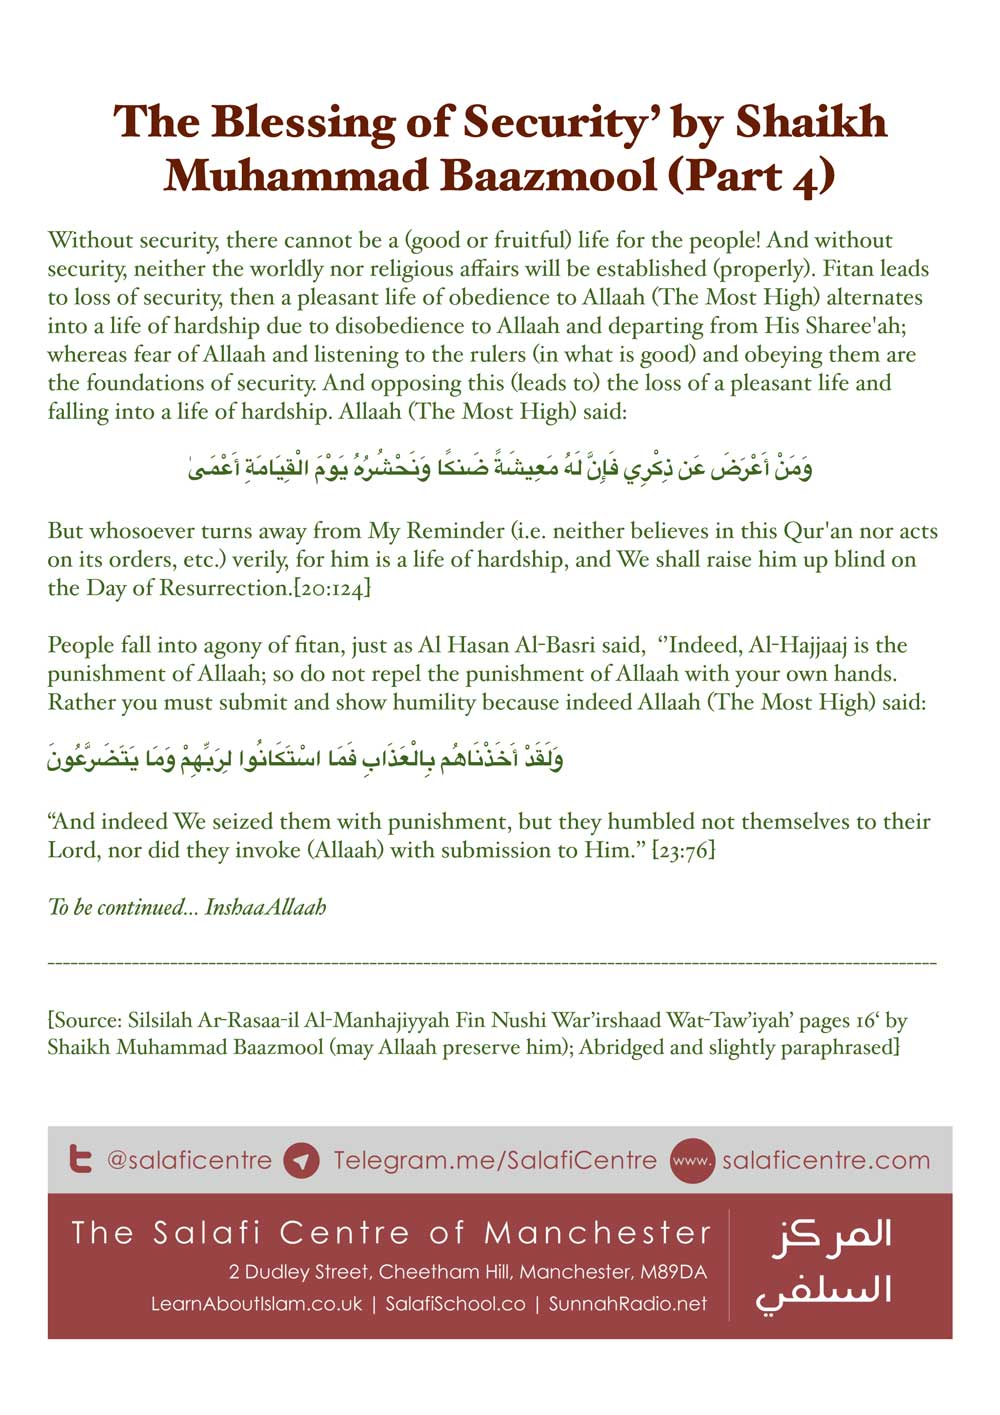 [4] The Blessing of Security' by Shaikh Muhammad Baazmool